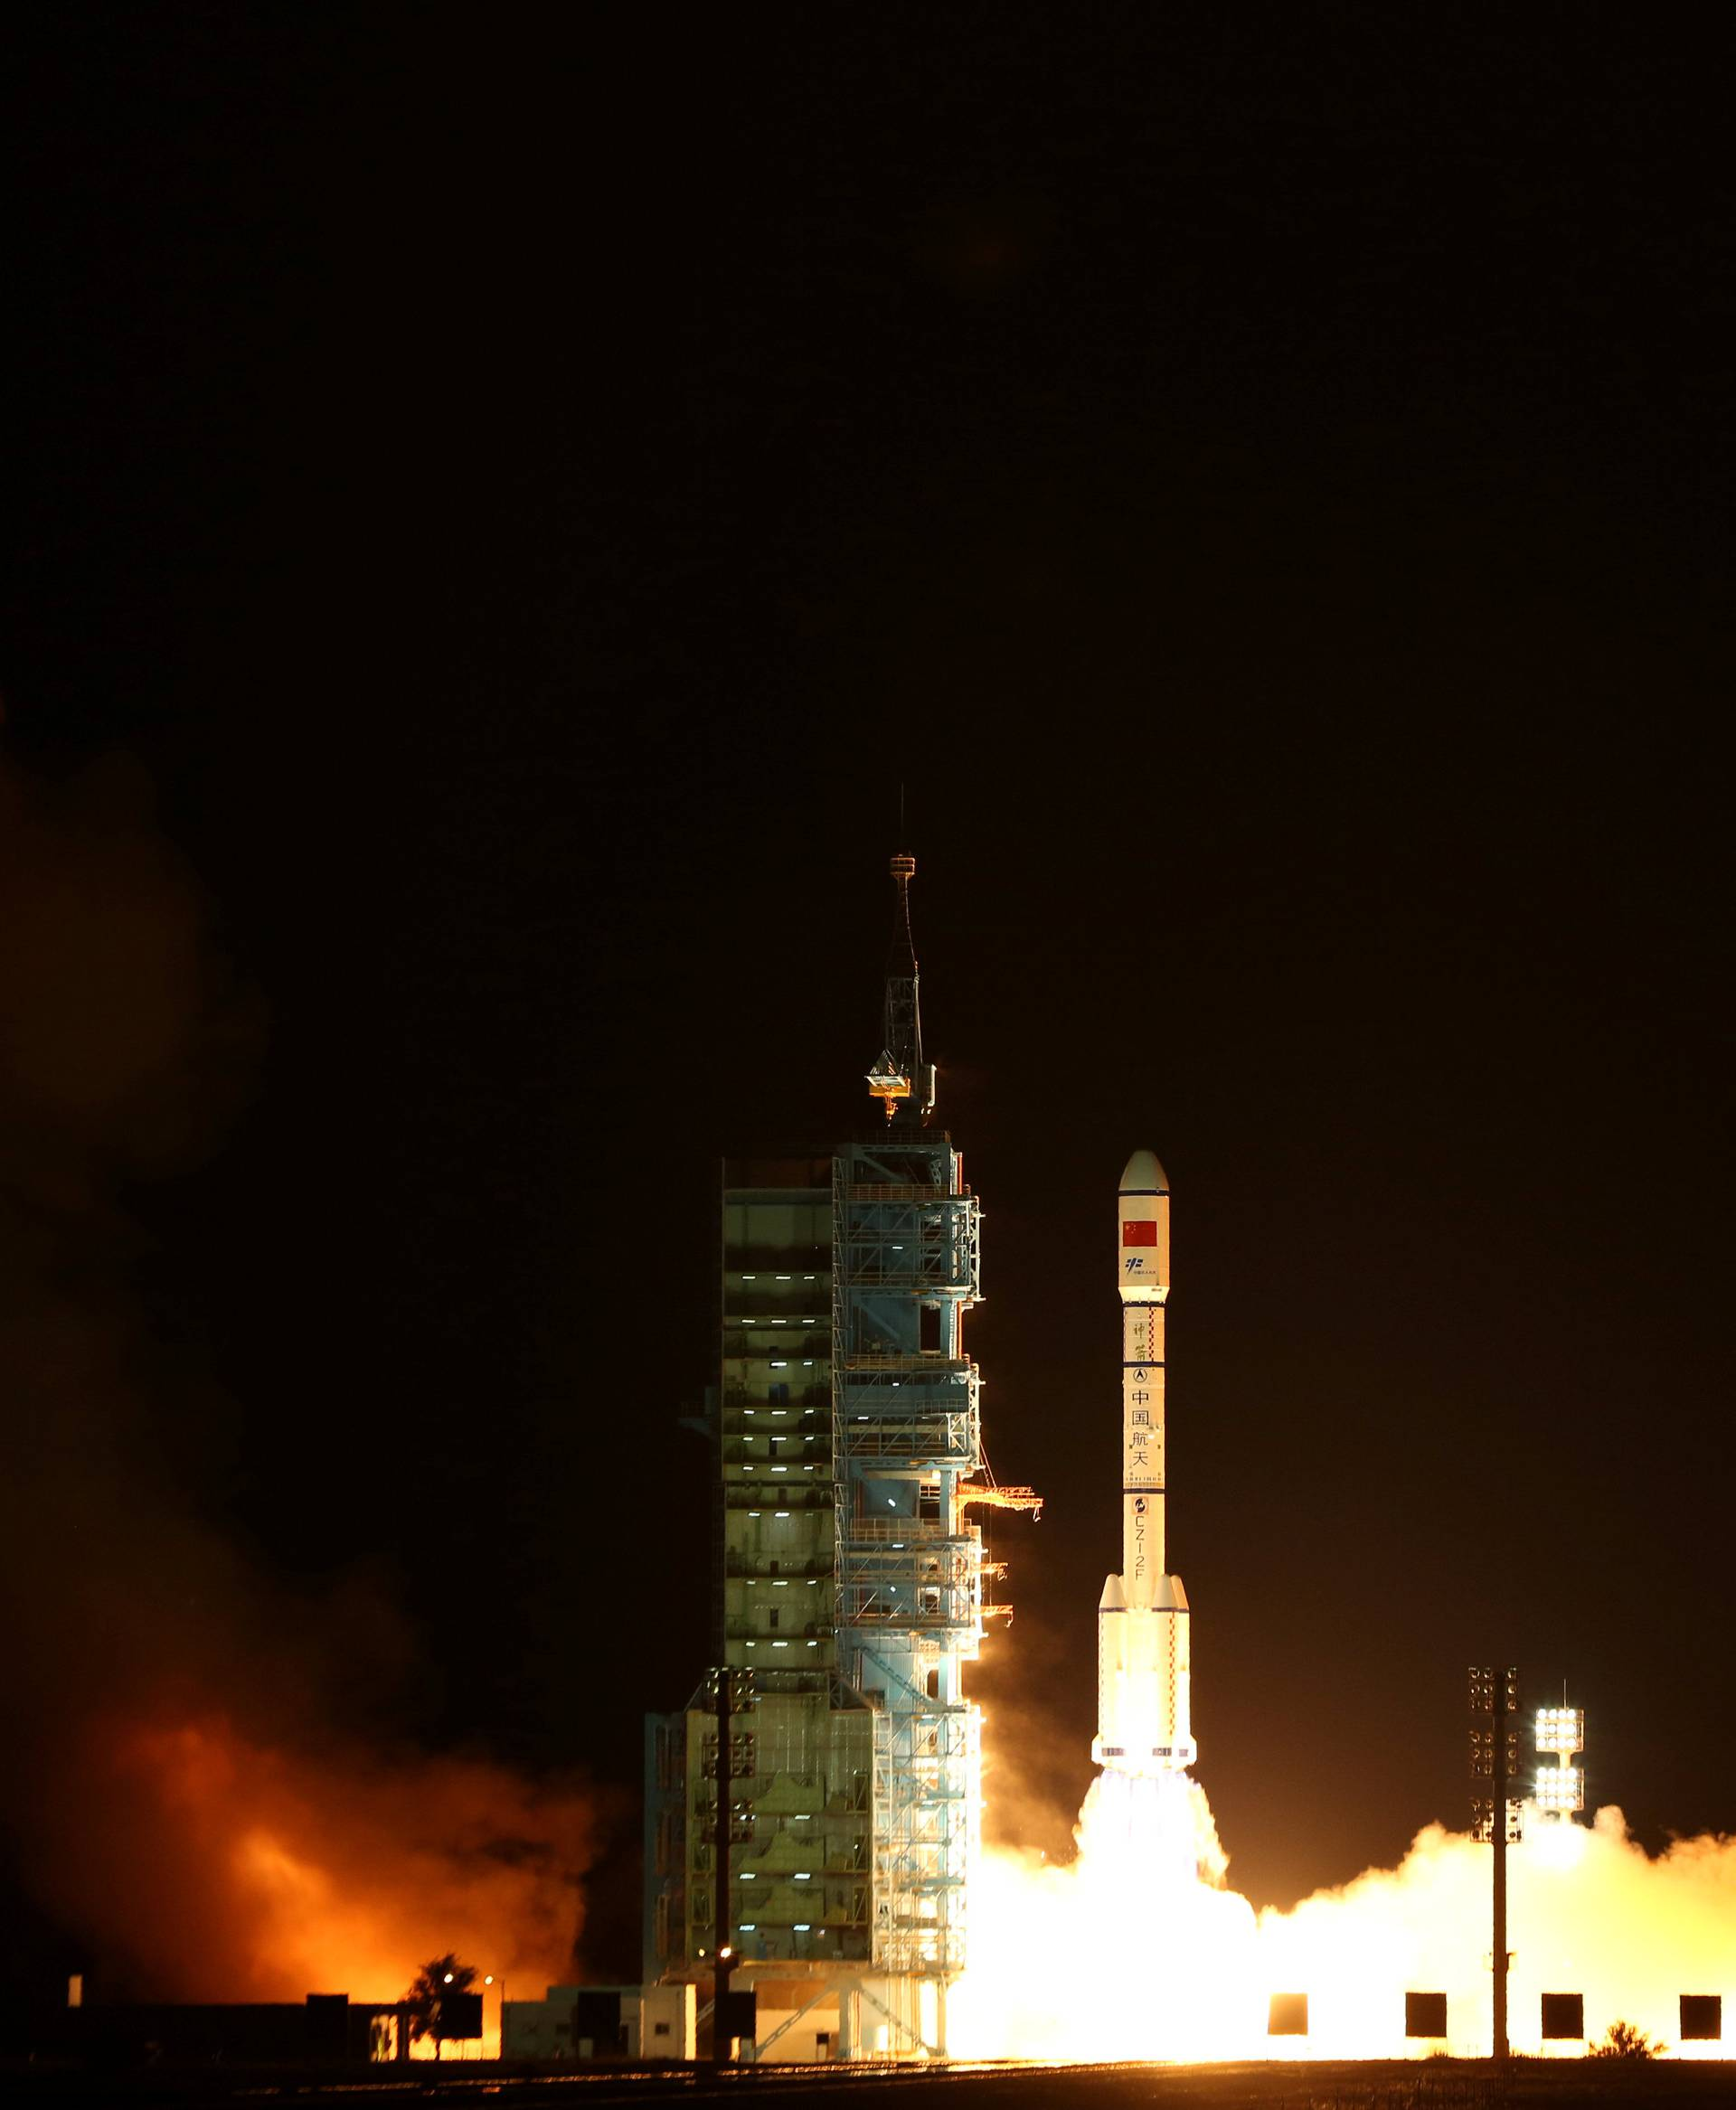 Tiangong-2, China's second space laboratory lifts off from the launch pad in Jiuquan